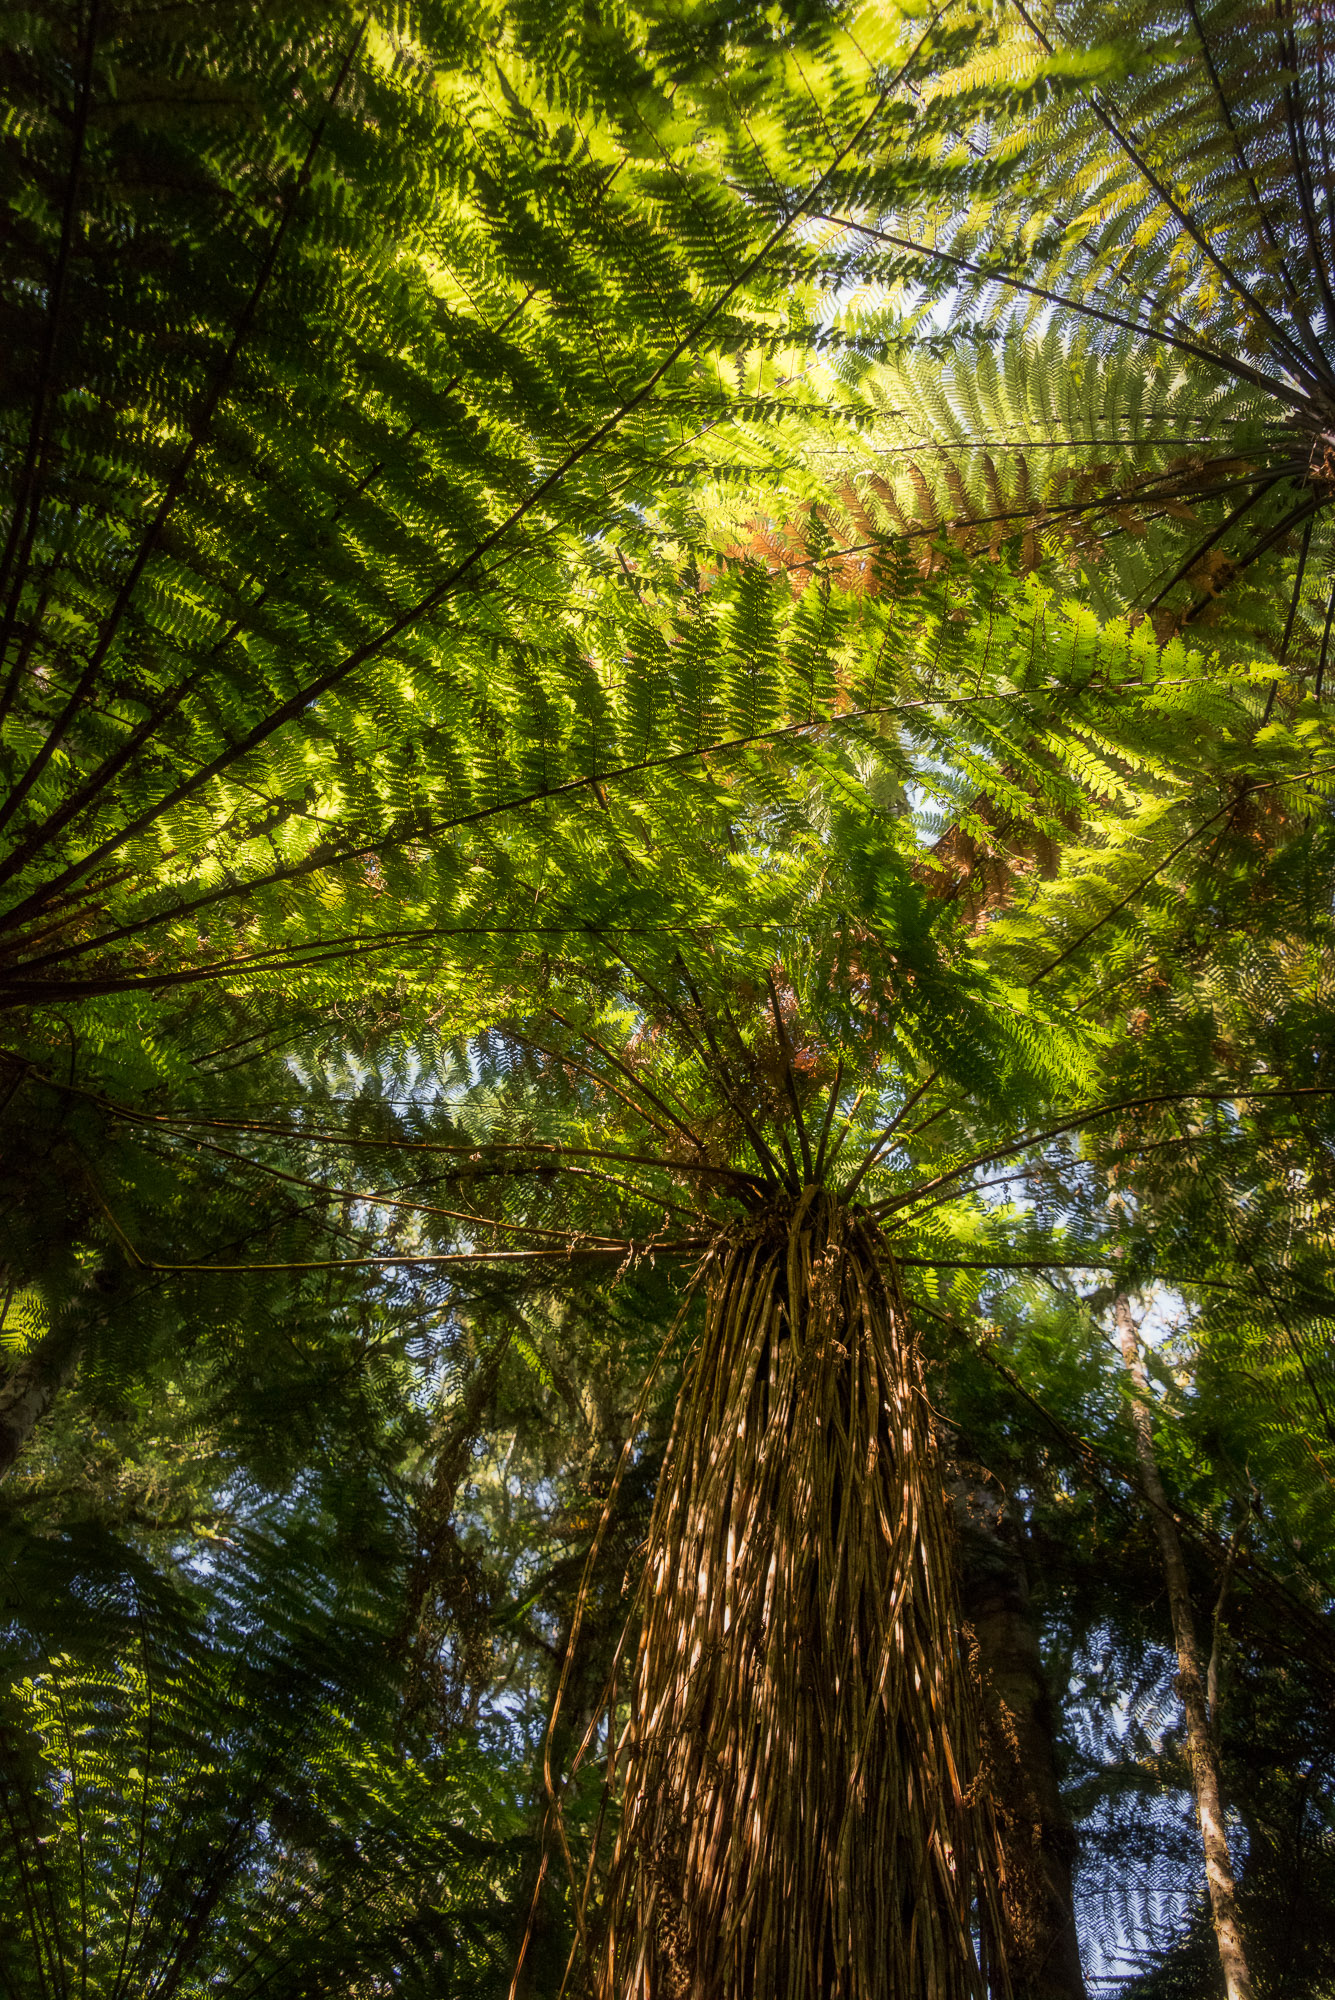 Tree fern forest - Roaring Billy Falls Trail, New Zealand